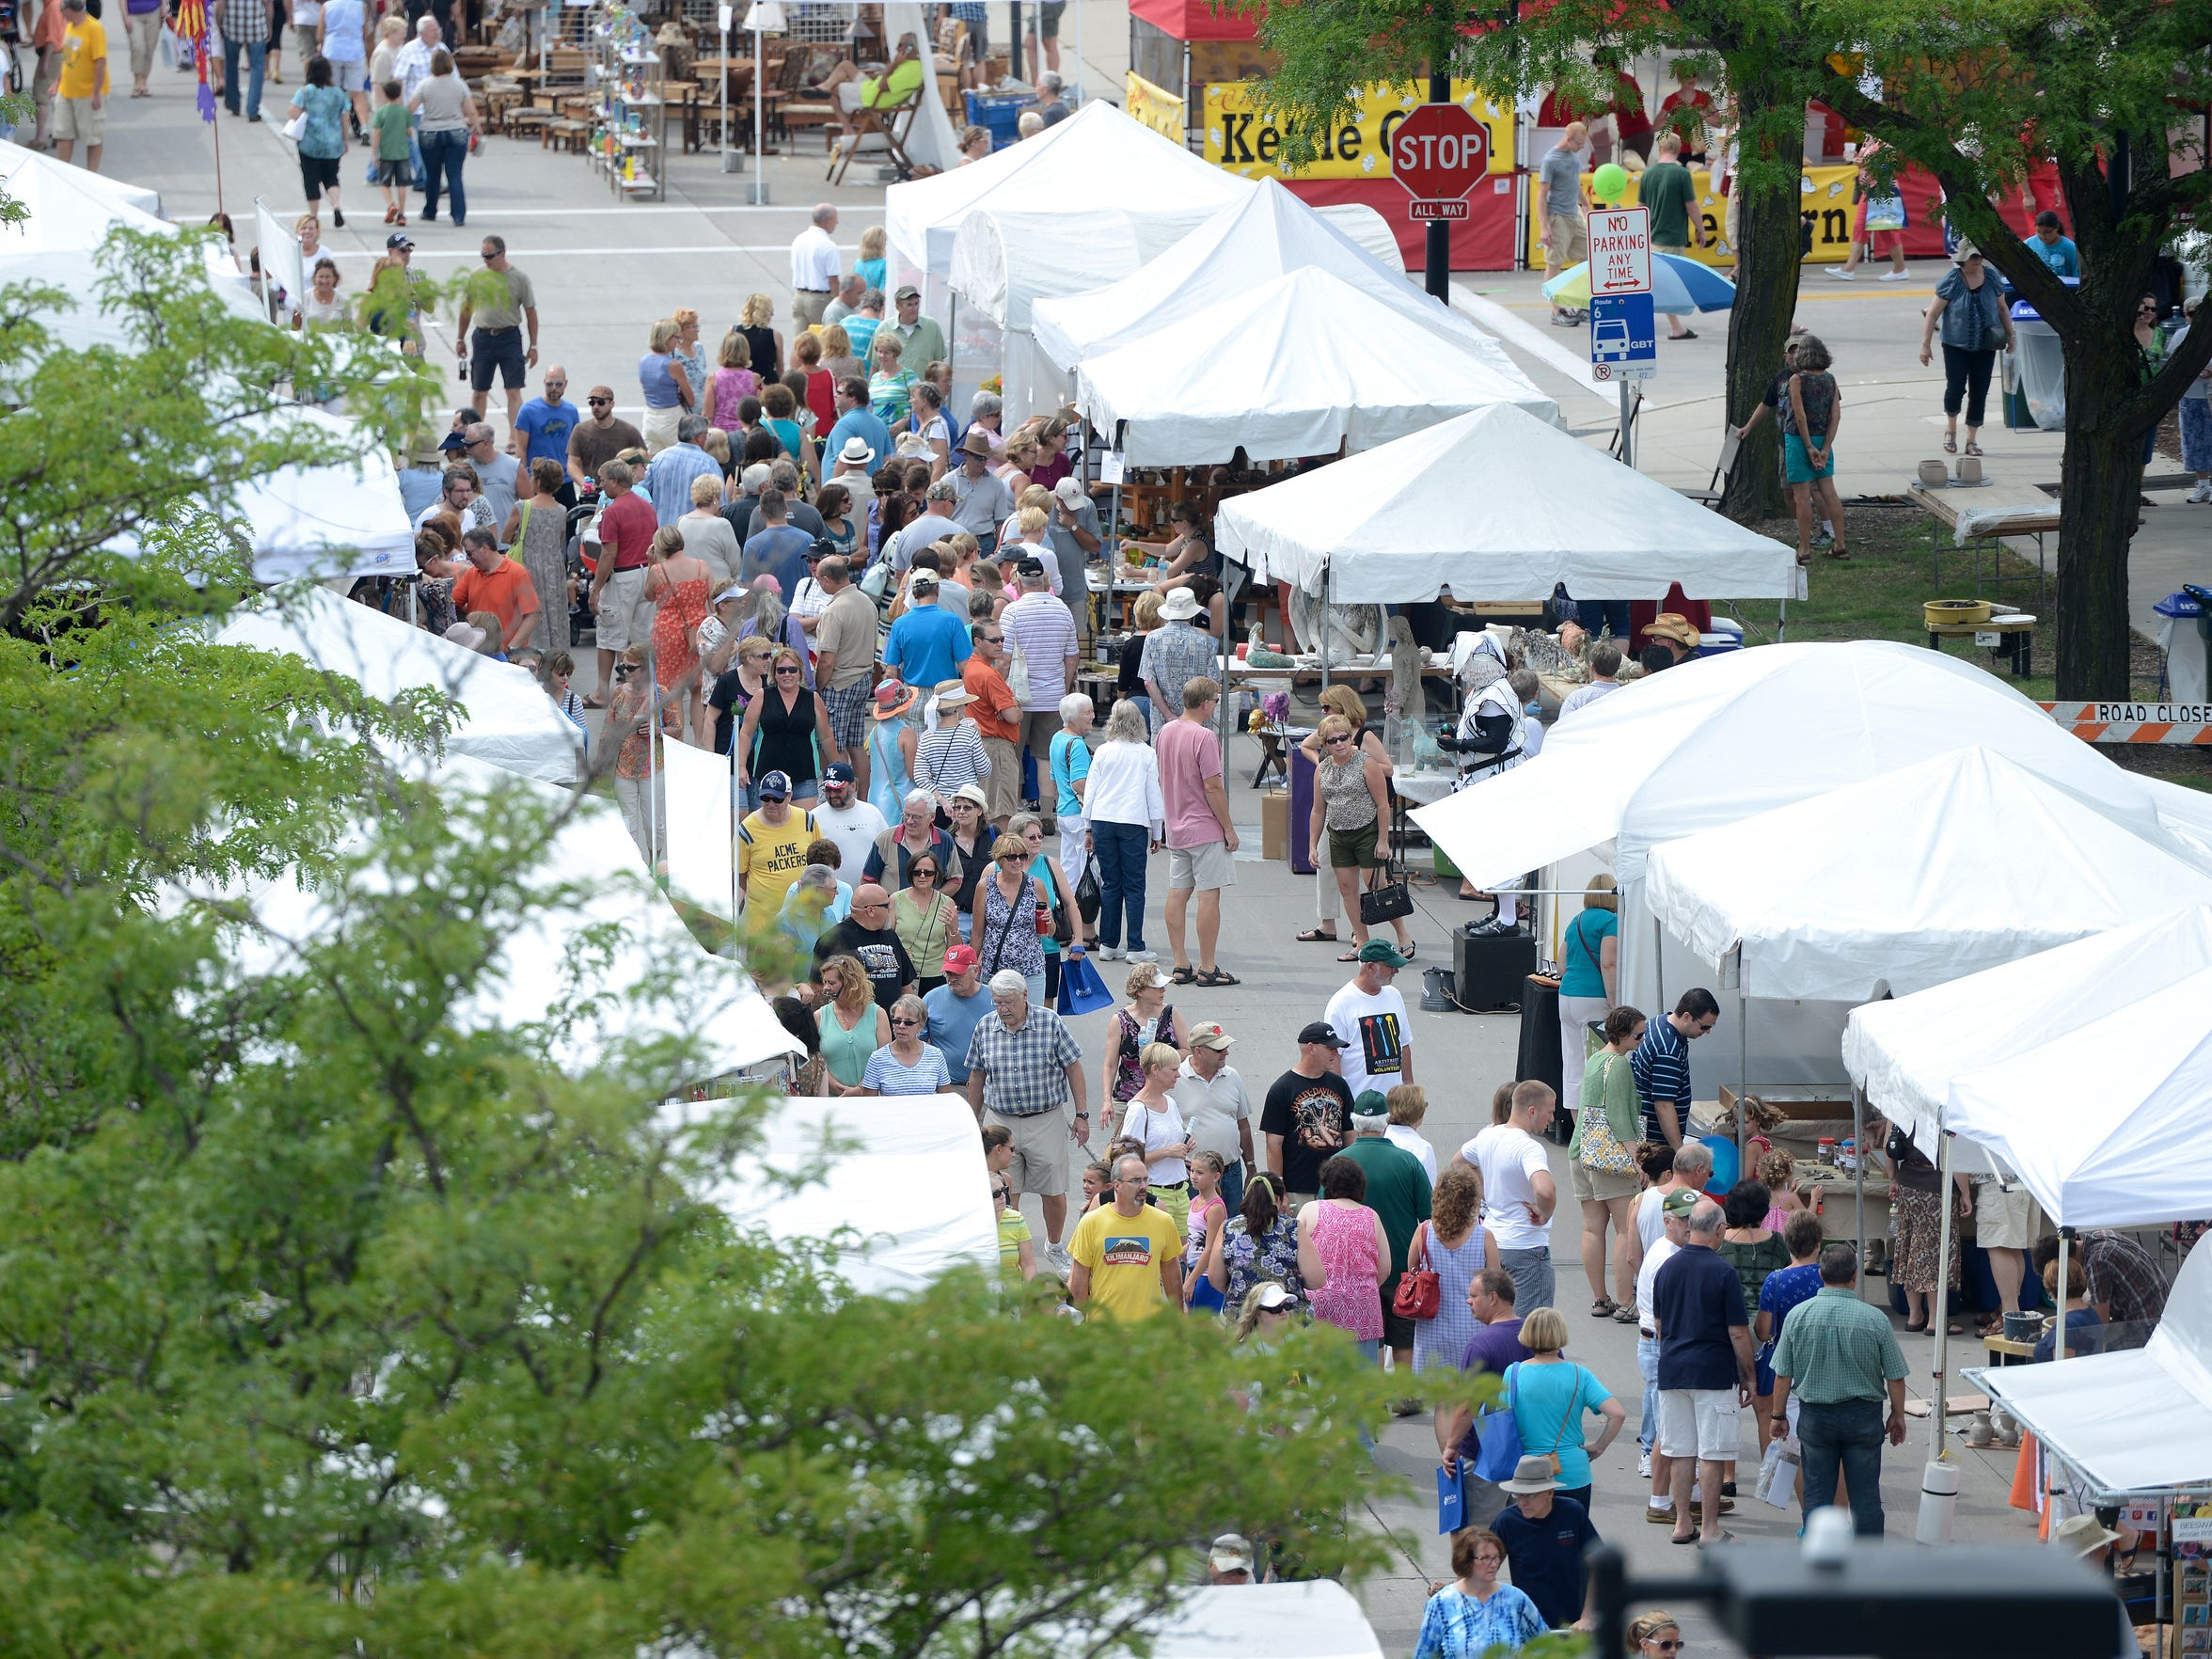 Artstreet will pack downtown Green Bay Aug. 28-30.